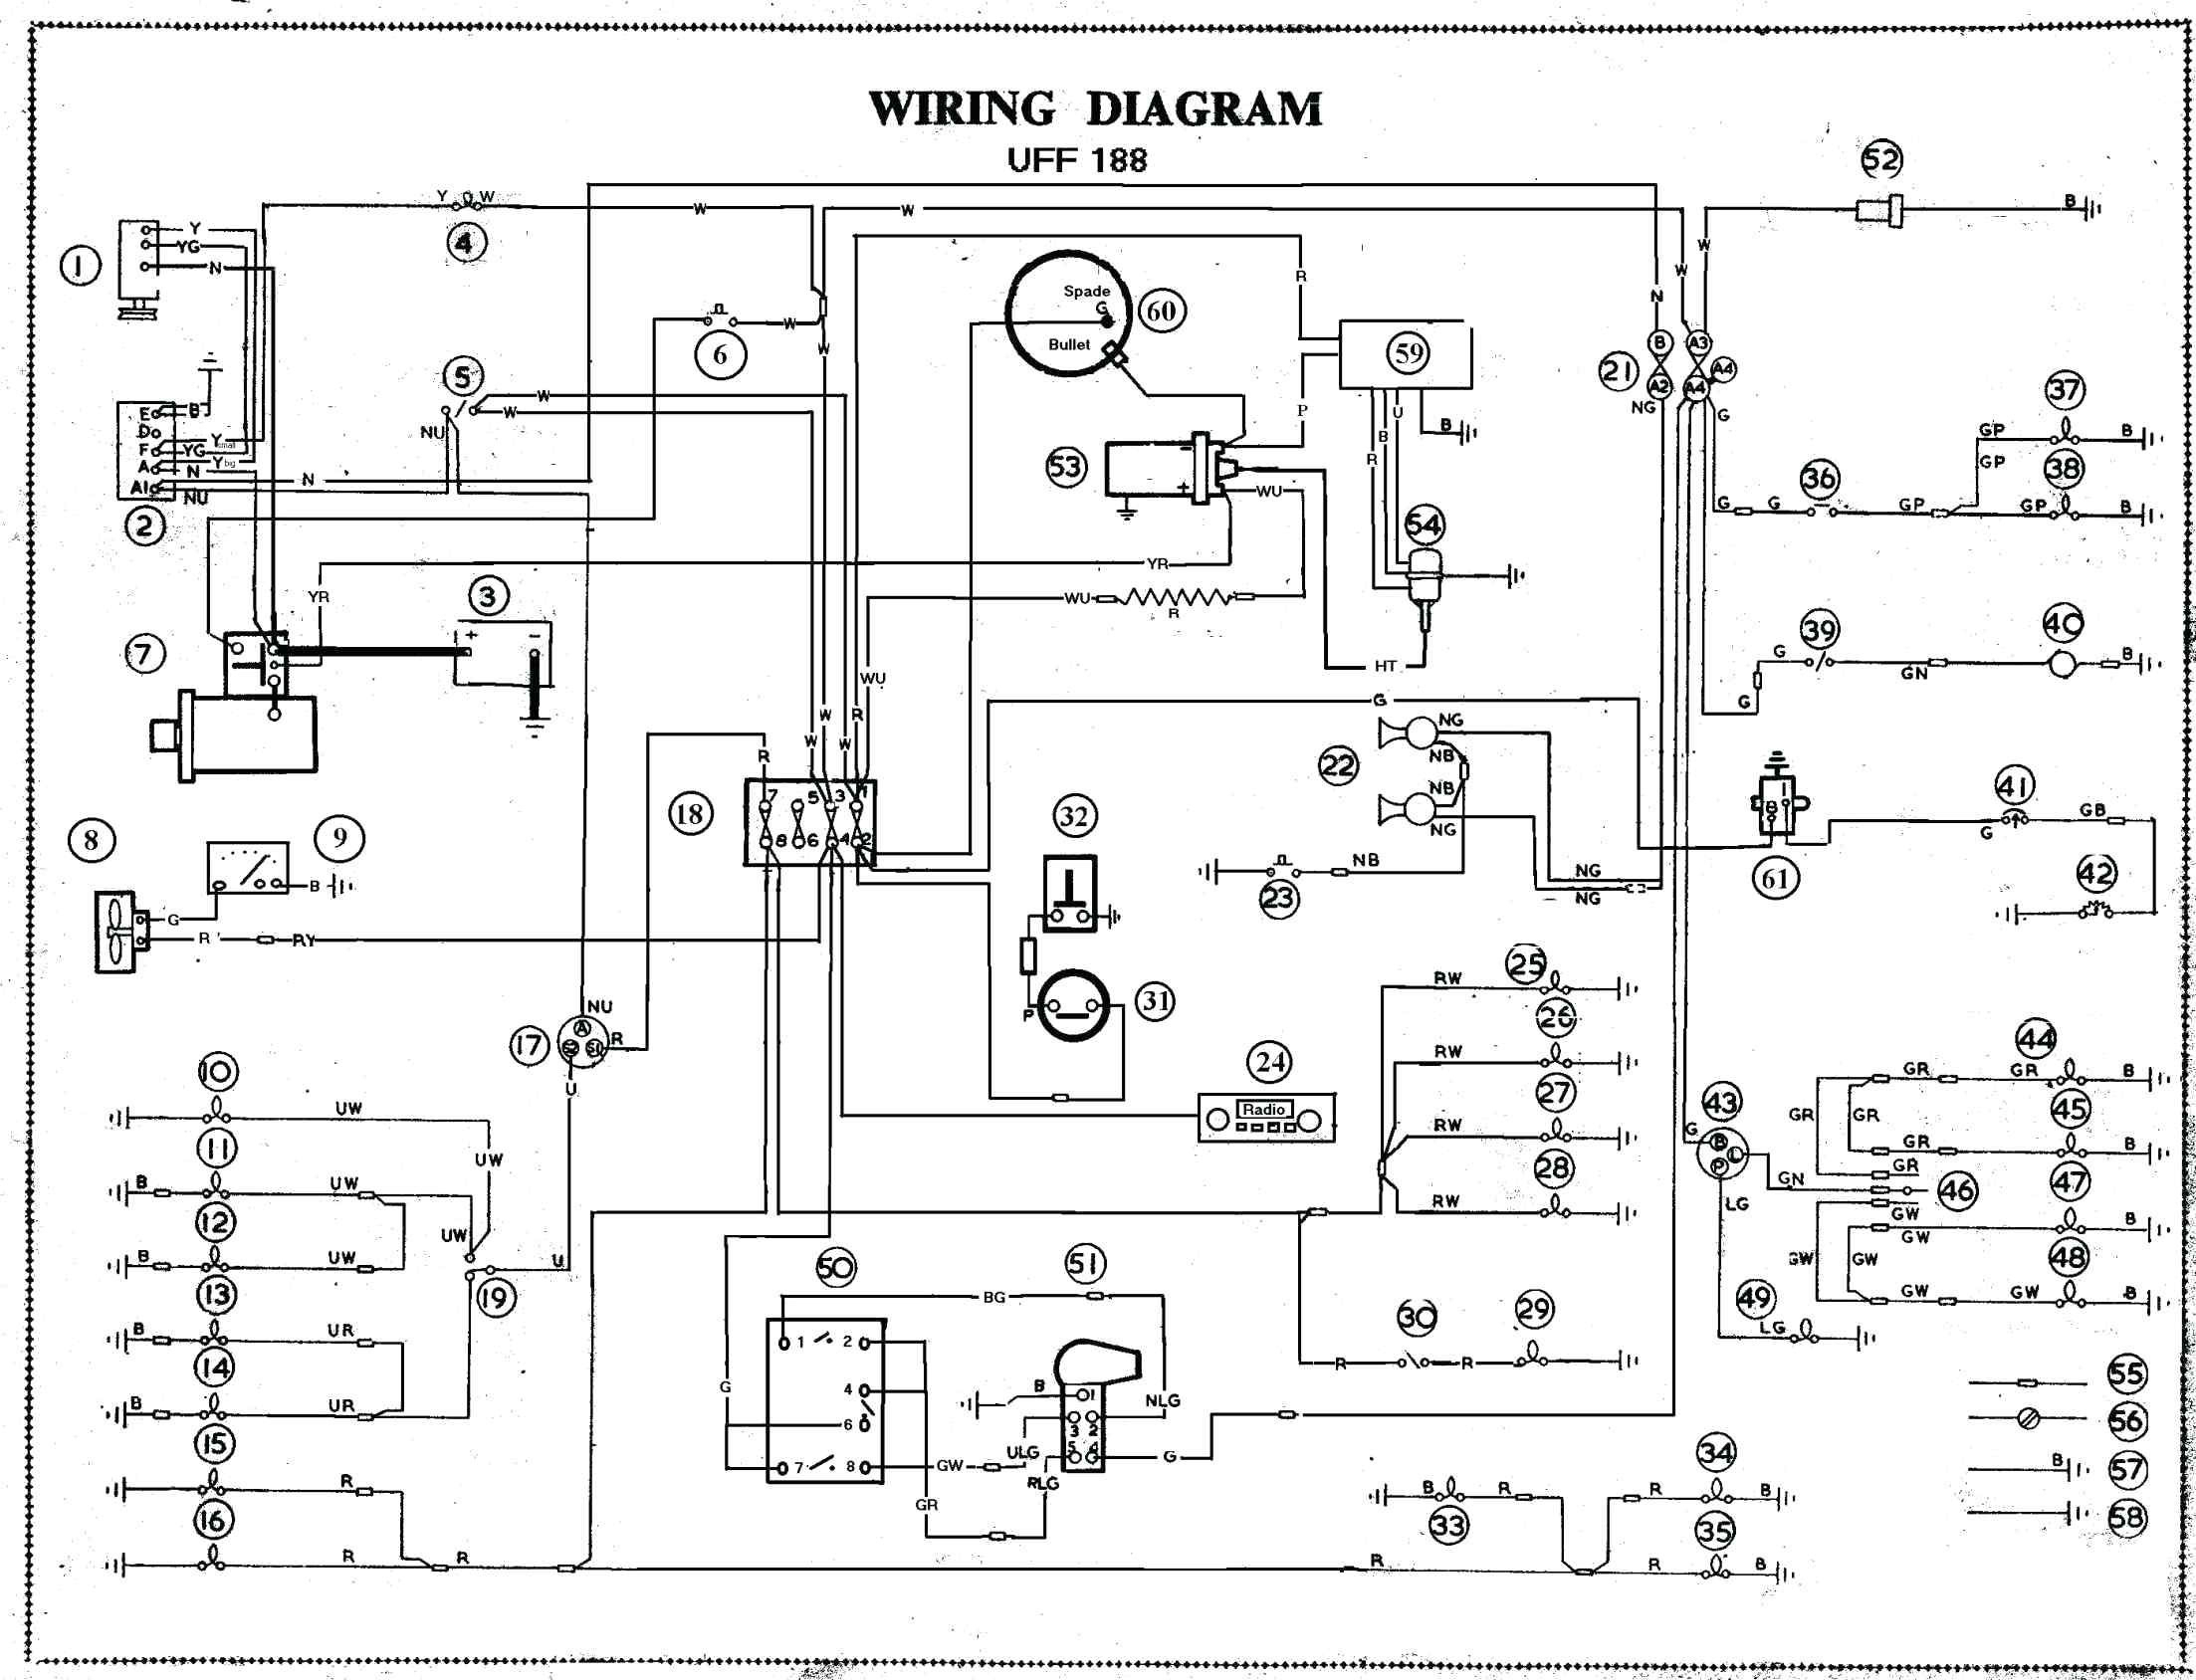 aerospace wiring diagram 3 way toggle switch guitar wiring diagram aircraft wiring diagram software gallery #5